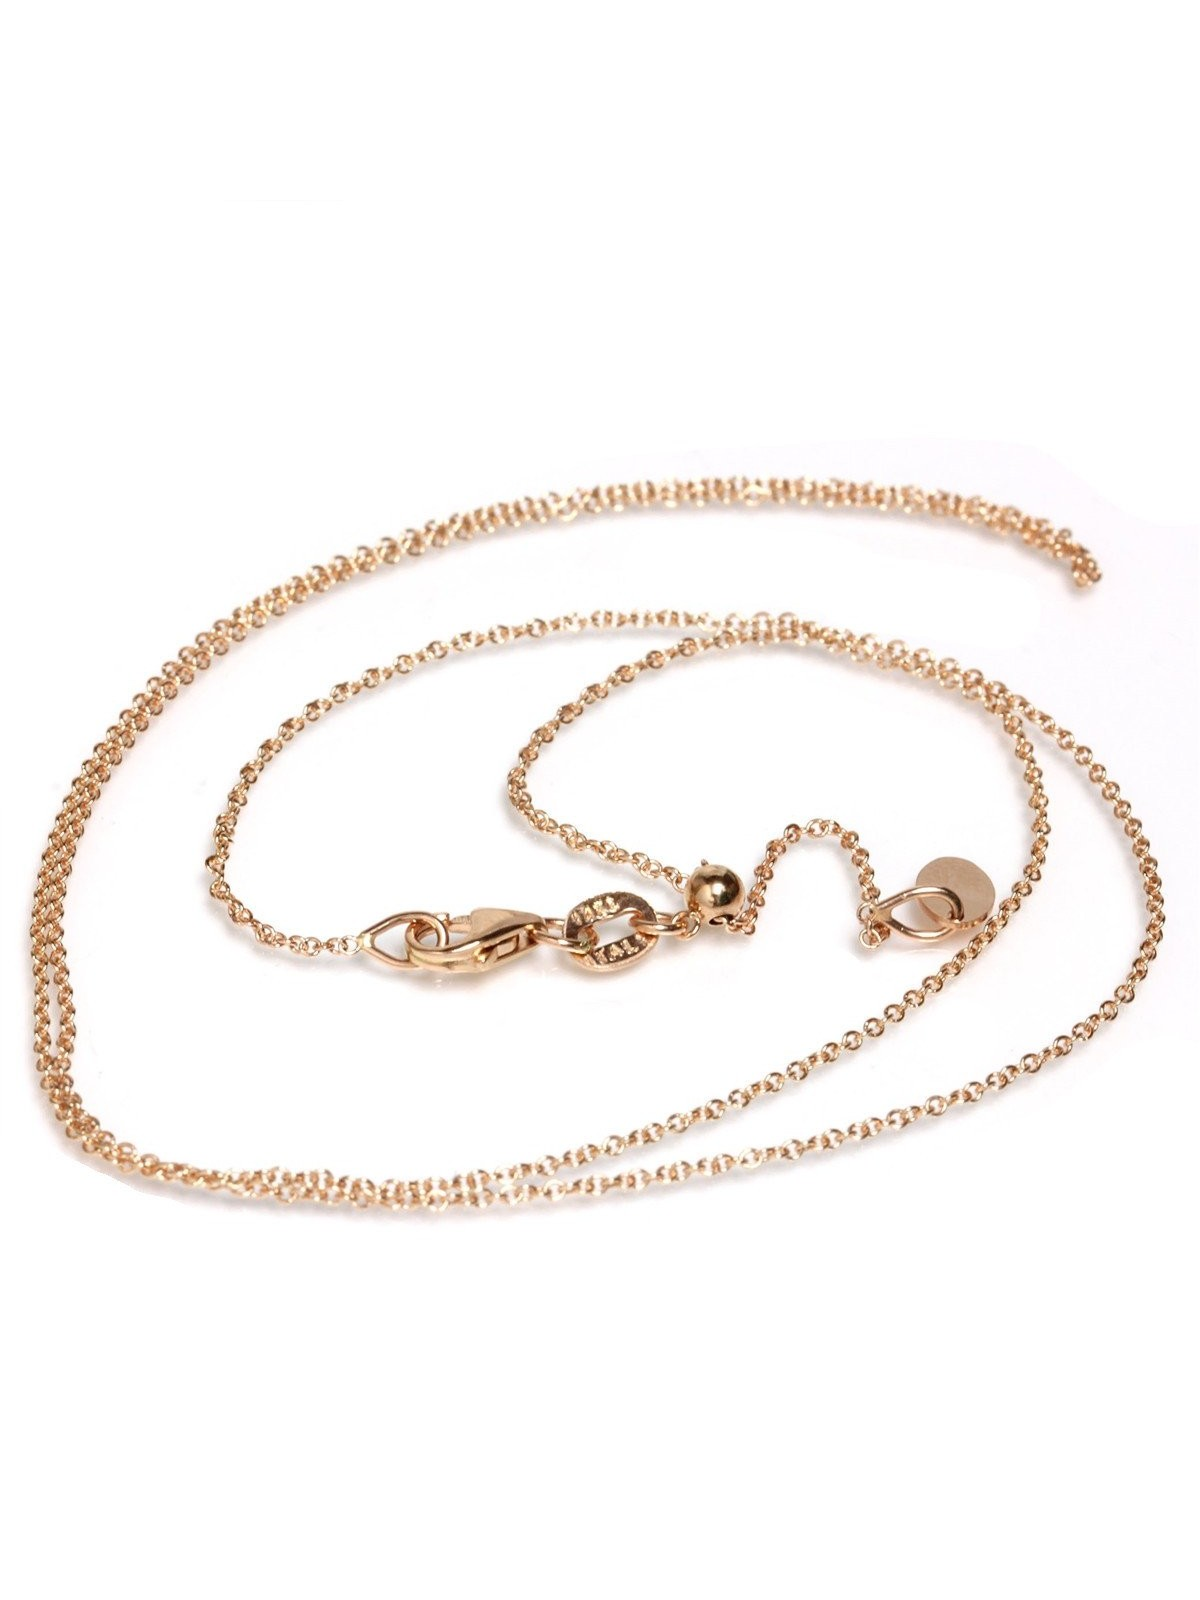 Chaine ajustable Or 14 carats Moea Perles - 6